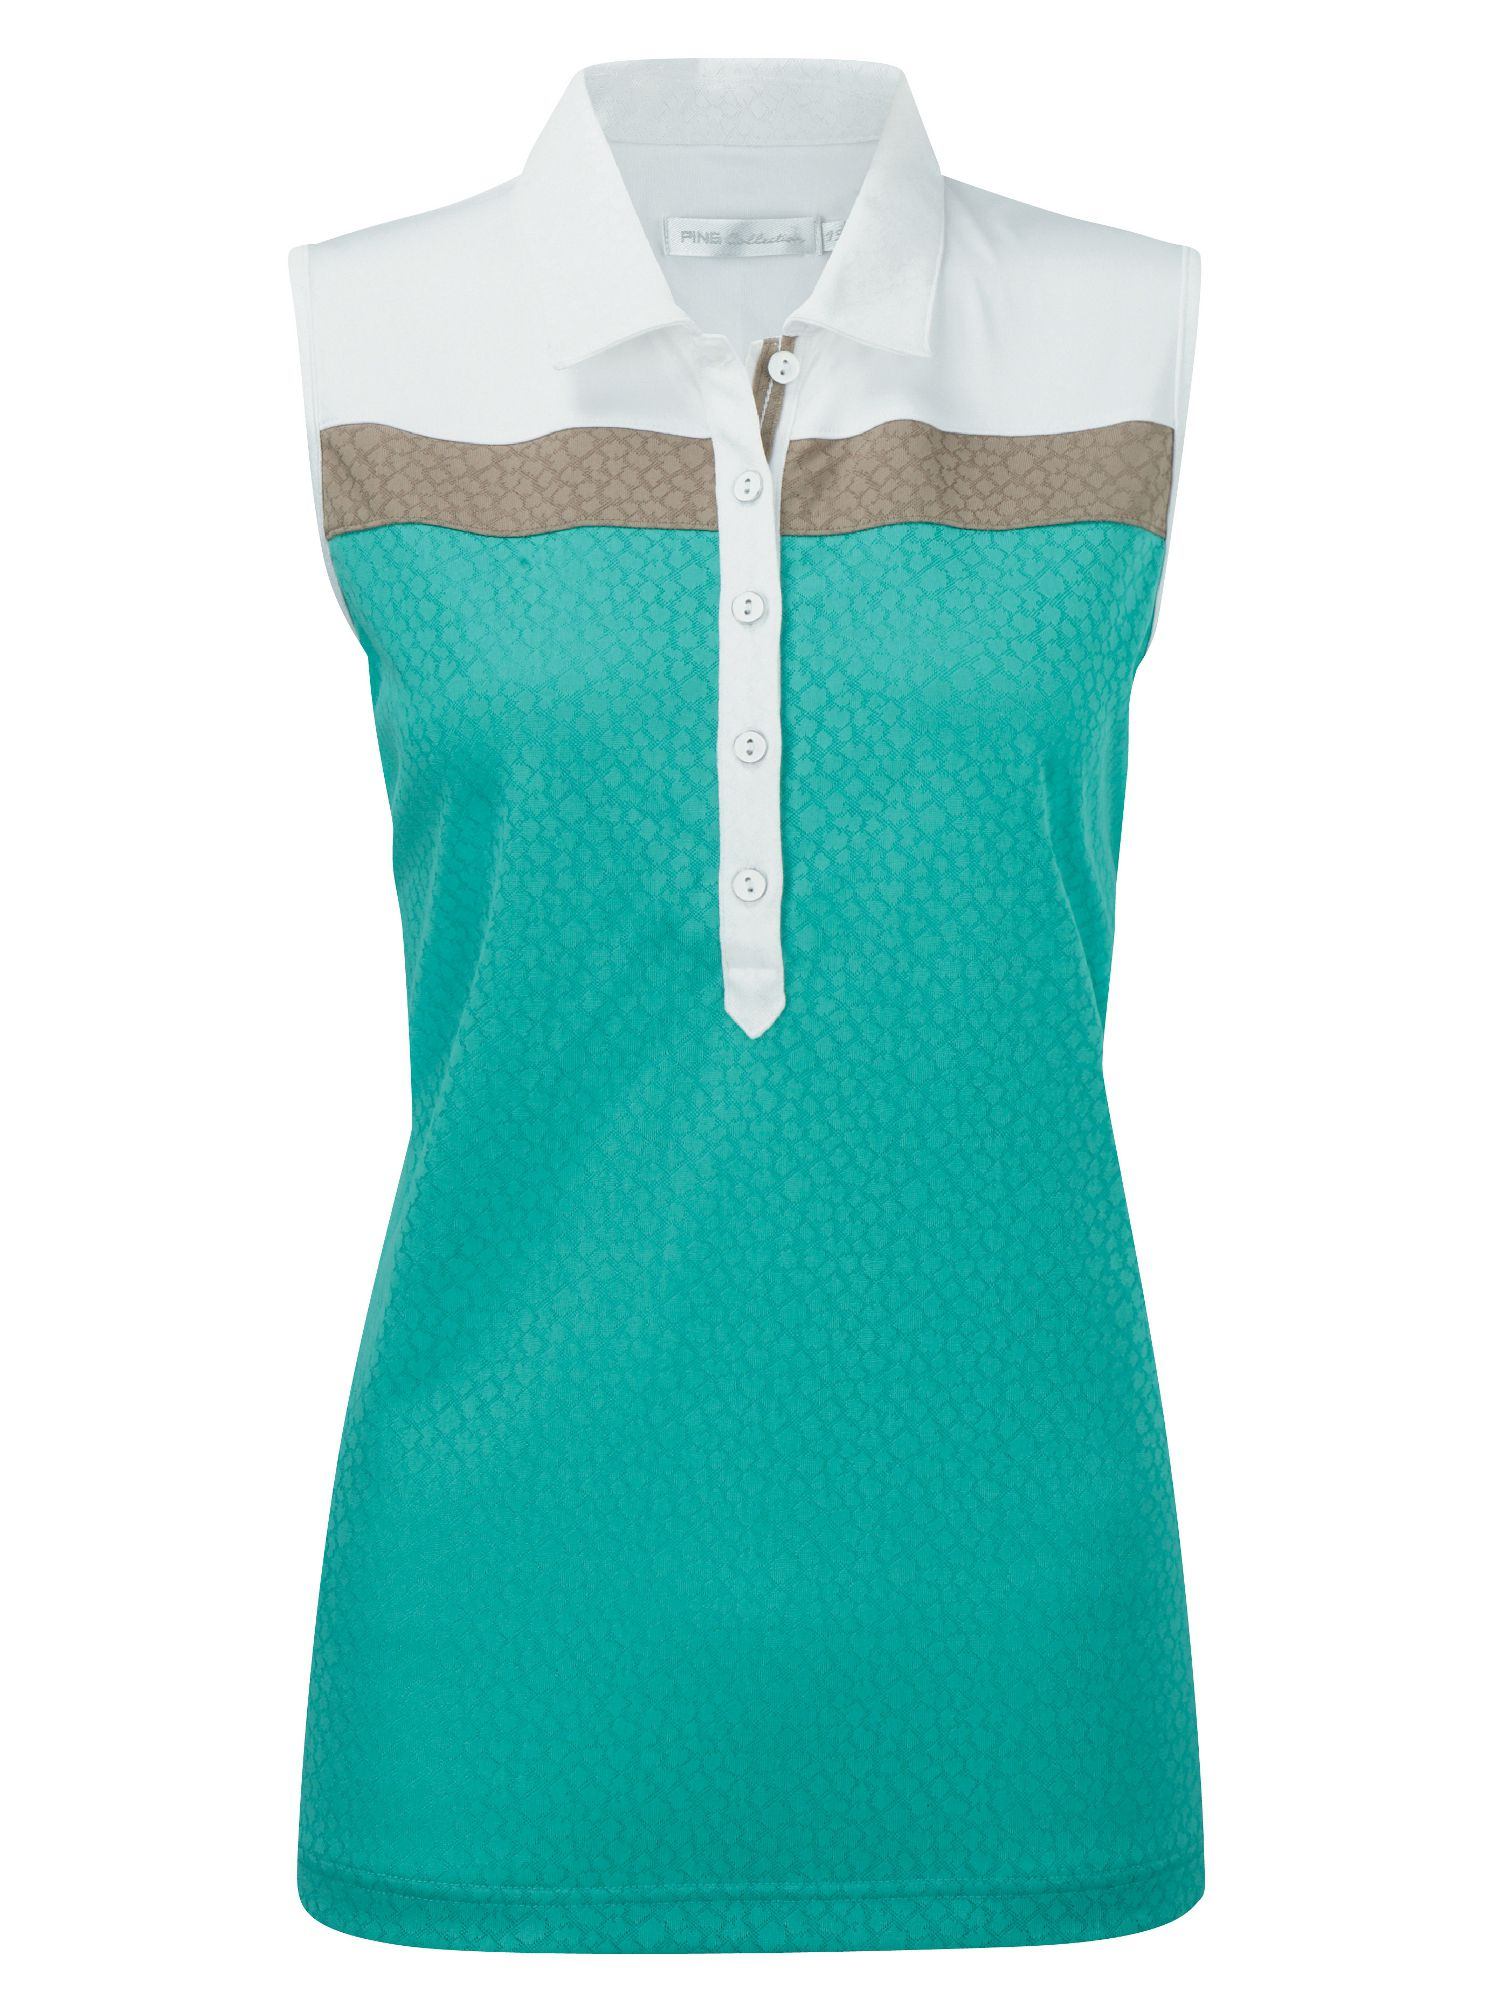 Trudy sleeveless polo shirt